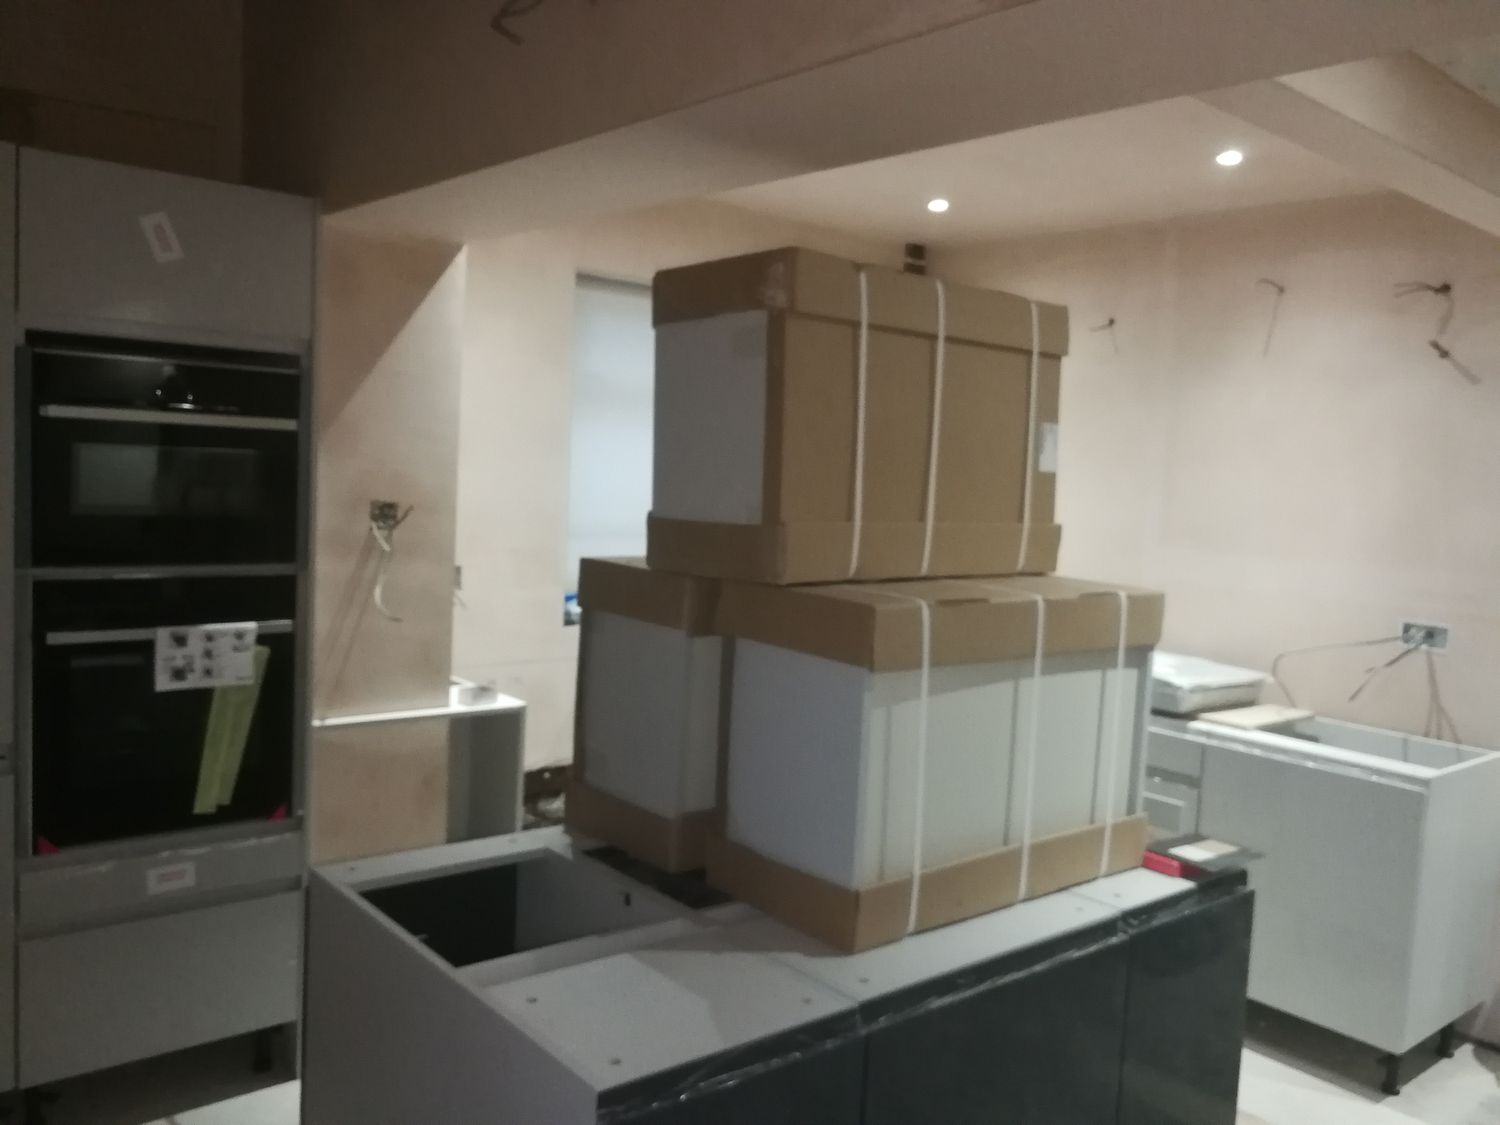 A photo of the same angle of the kitchen area with the units partially installed and bare plaster walls.